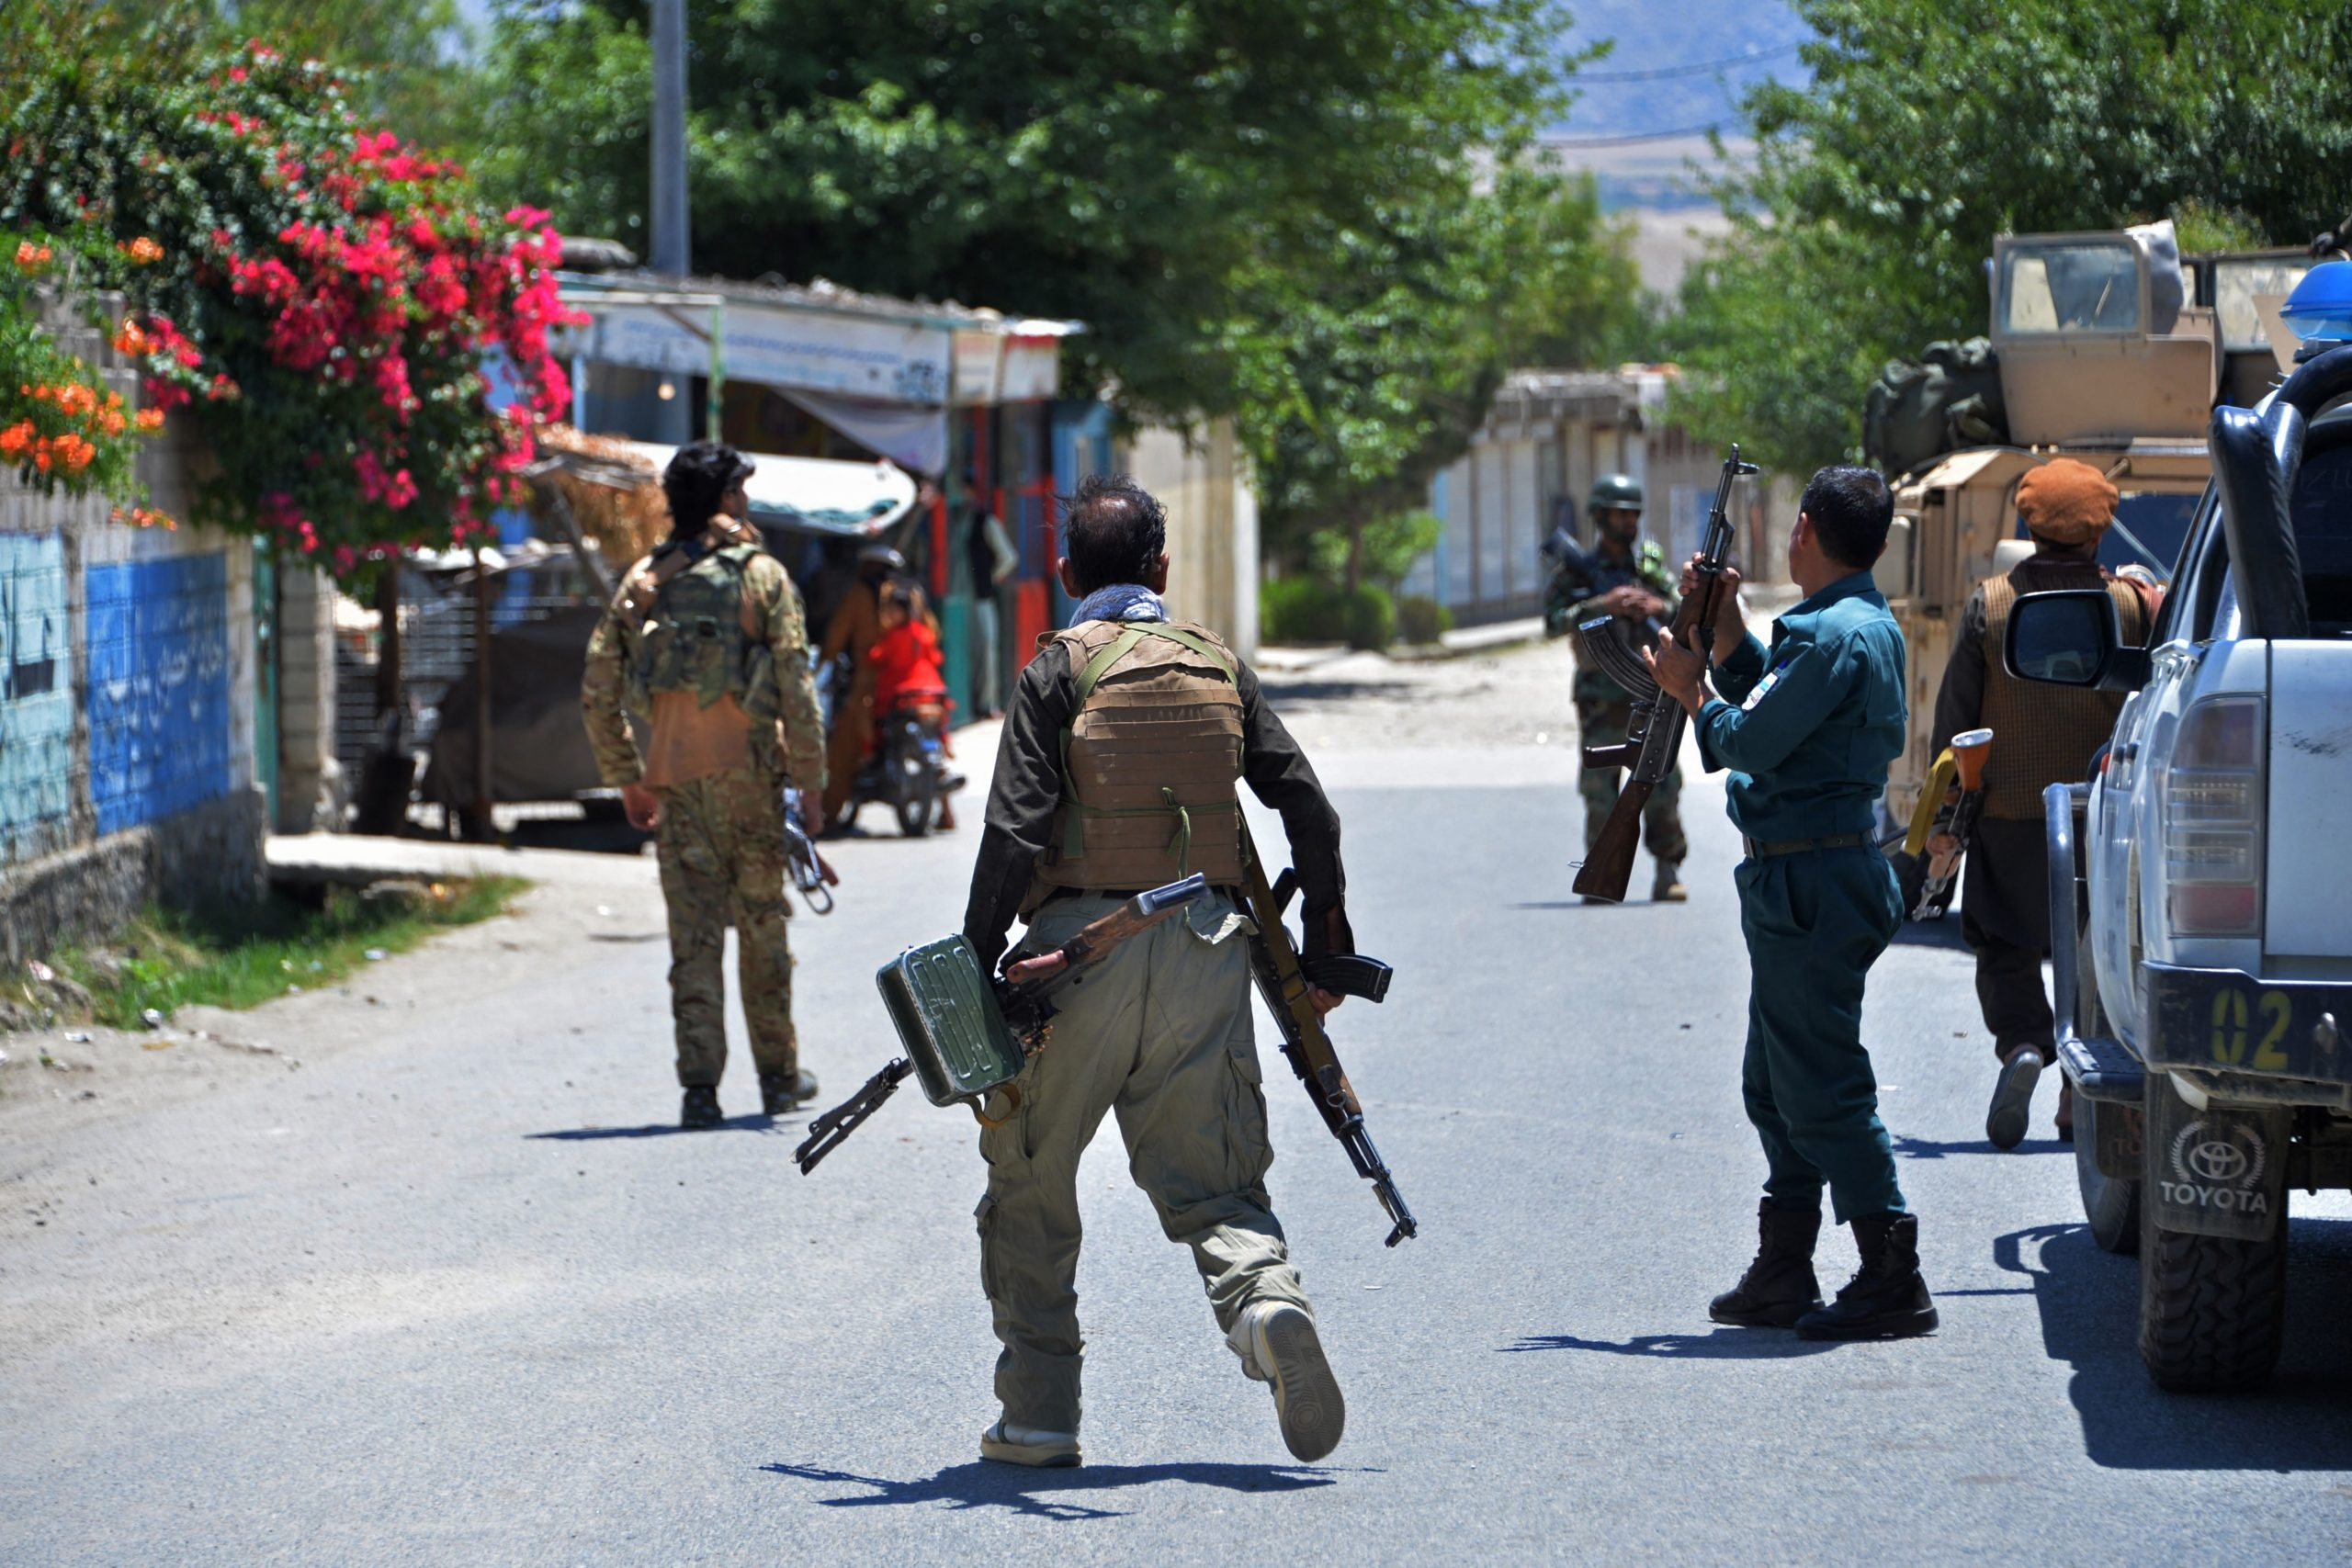 Members of Afghan security forces patrol a street during an ongoing clash between Taliban and Afghan forces in Mihtarlam. (Photo by NOORULLAH SHIRZADA/AFP via Getty Images)